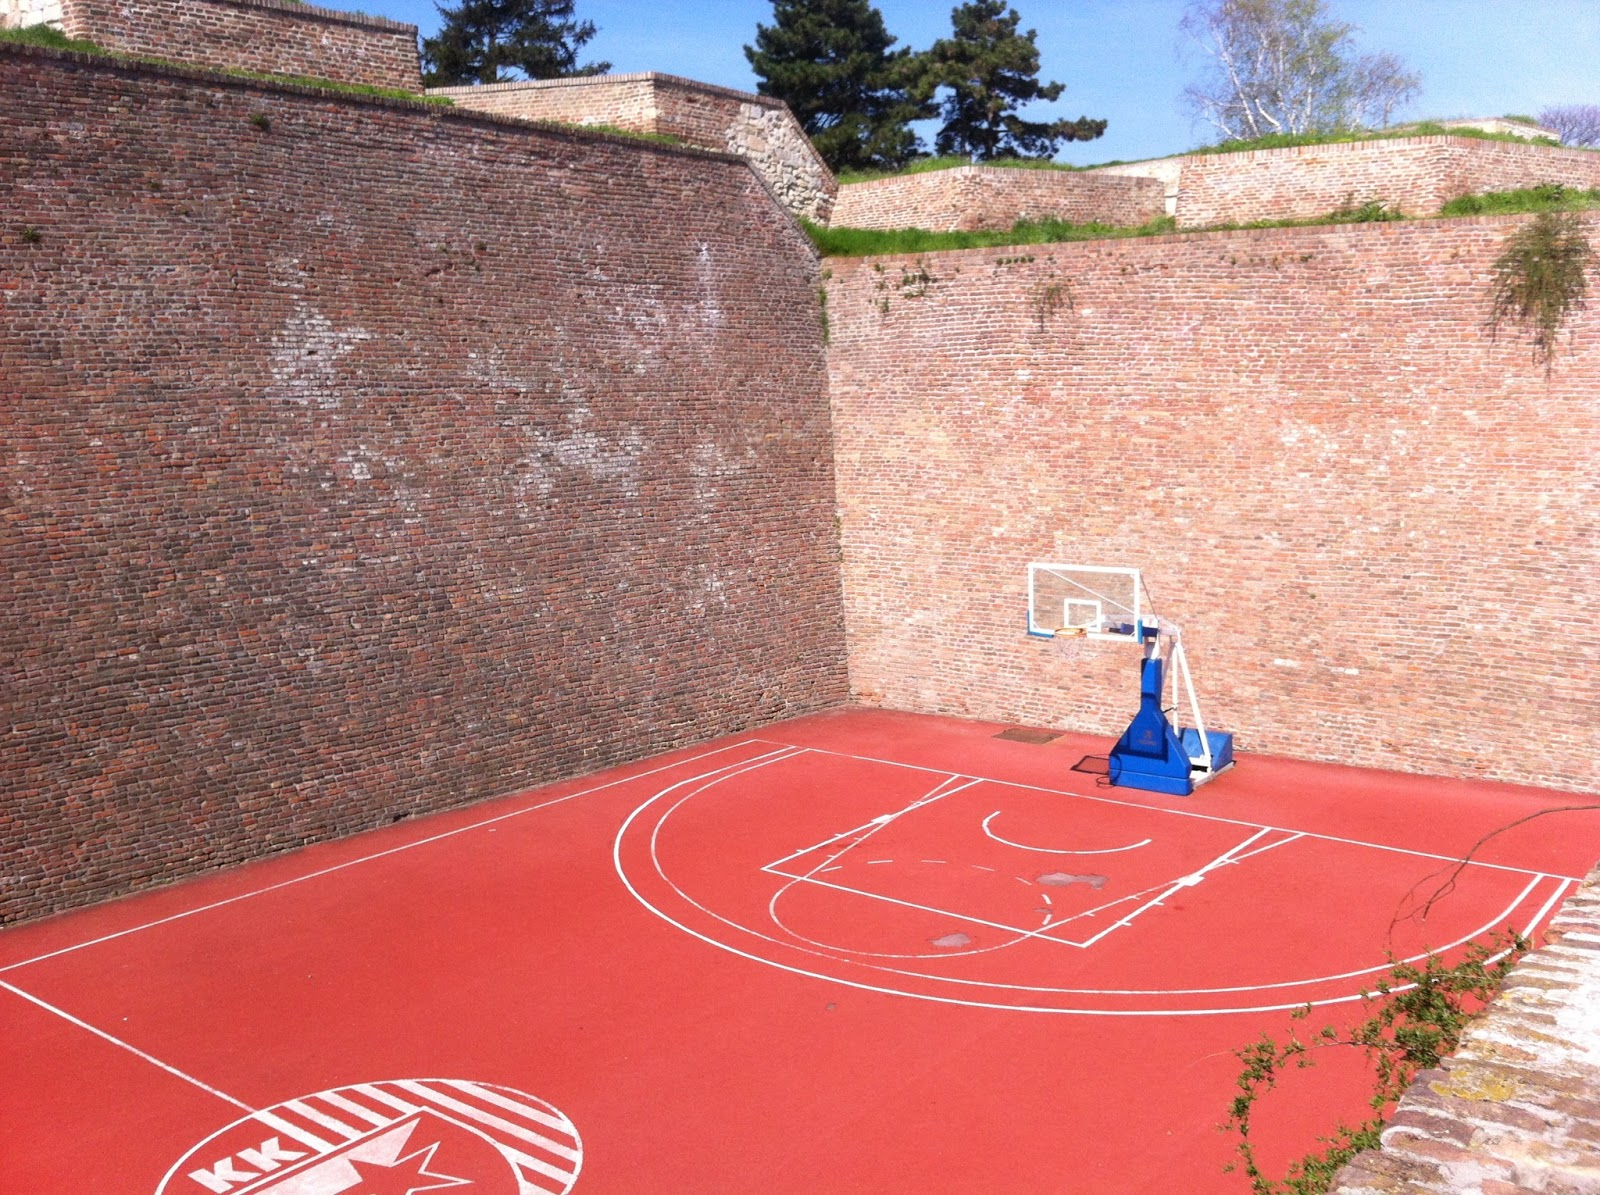 Goodbyeharan ce euro vacay belgrade for Built in basketball court